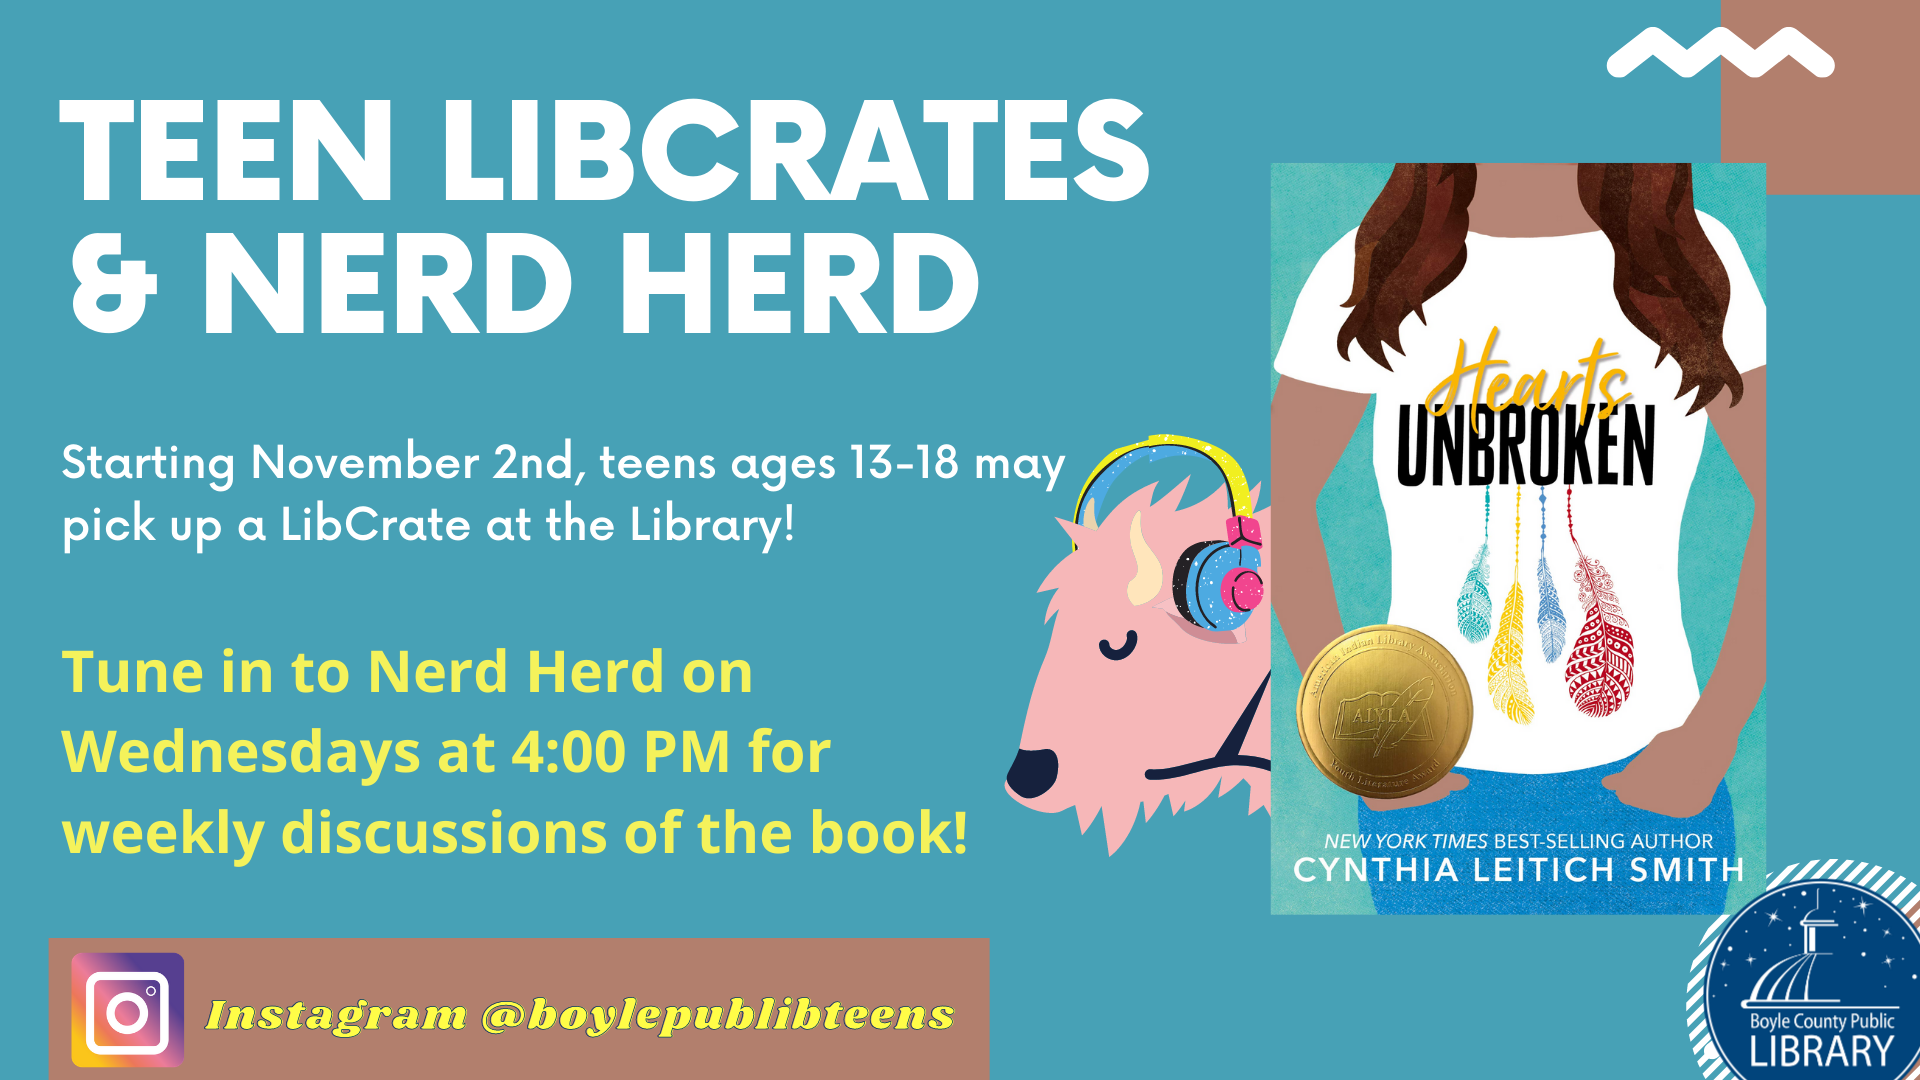 LibCrates and Nerd Herd